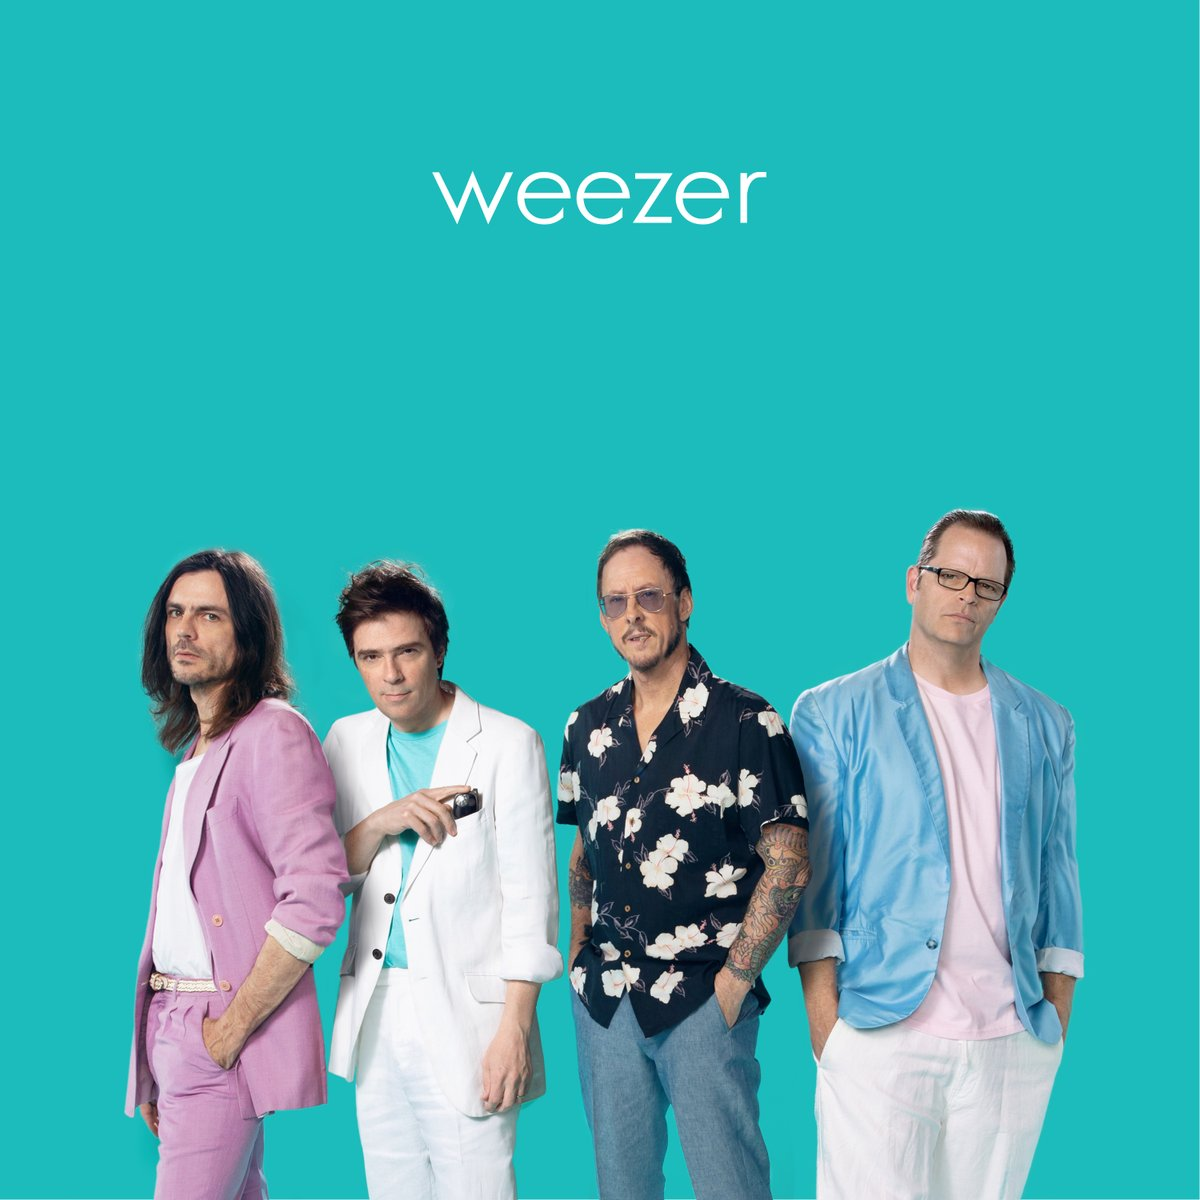 Weezer, Weezer new album, Weezer Teal Album, Teal Album, Weezer covers, covers by Weezer, Weezer 2019, song covers, Africa, Everybody Wants To Rule The World, Sweet Dreams (Are Made Of This), Take On Me, Happy Together, Paranoid, Mr. Blue Sky, No Scrubs, Billie Jean, Stand by Me, Weezer covers No Scrubs, Weezer covers TLC, TLC, No Scrubs covers, Twitter, Trending Tweets, Weezer plays No Scrubs,